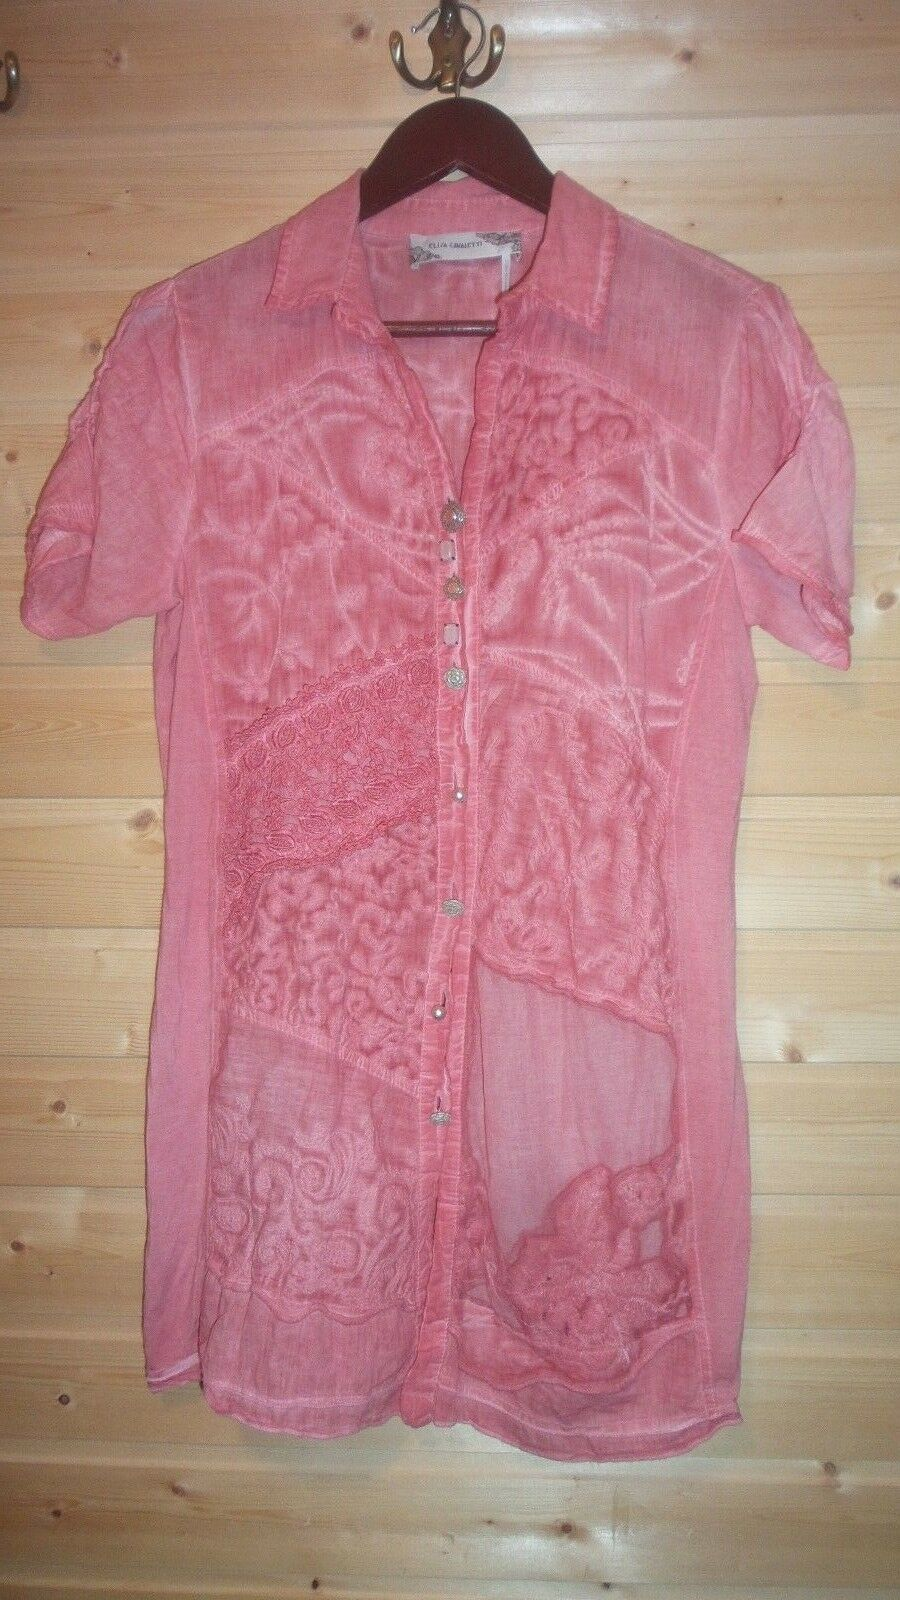 LADIES ELISA CAVALETTI BUTTON DOWN EMBROIDERED PINK SHIRT  SZ L COTTON ITALY